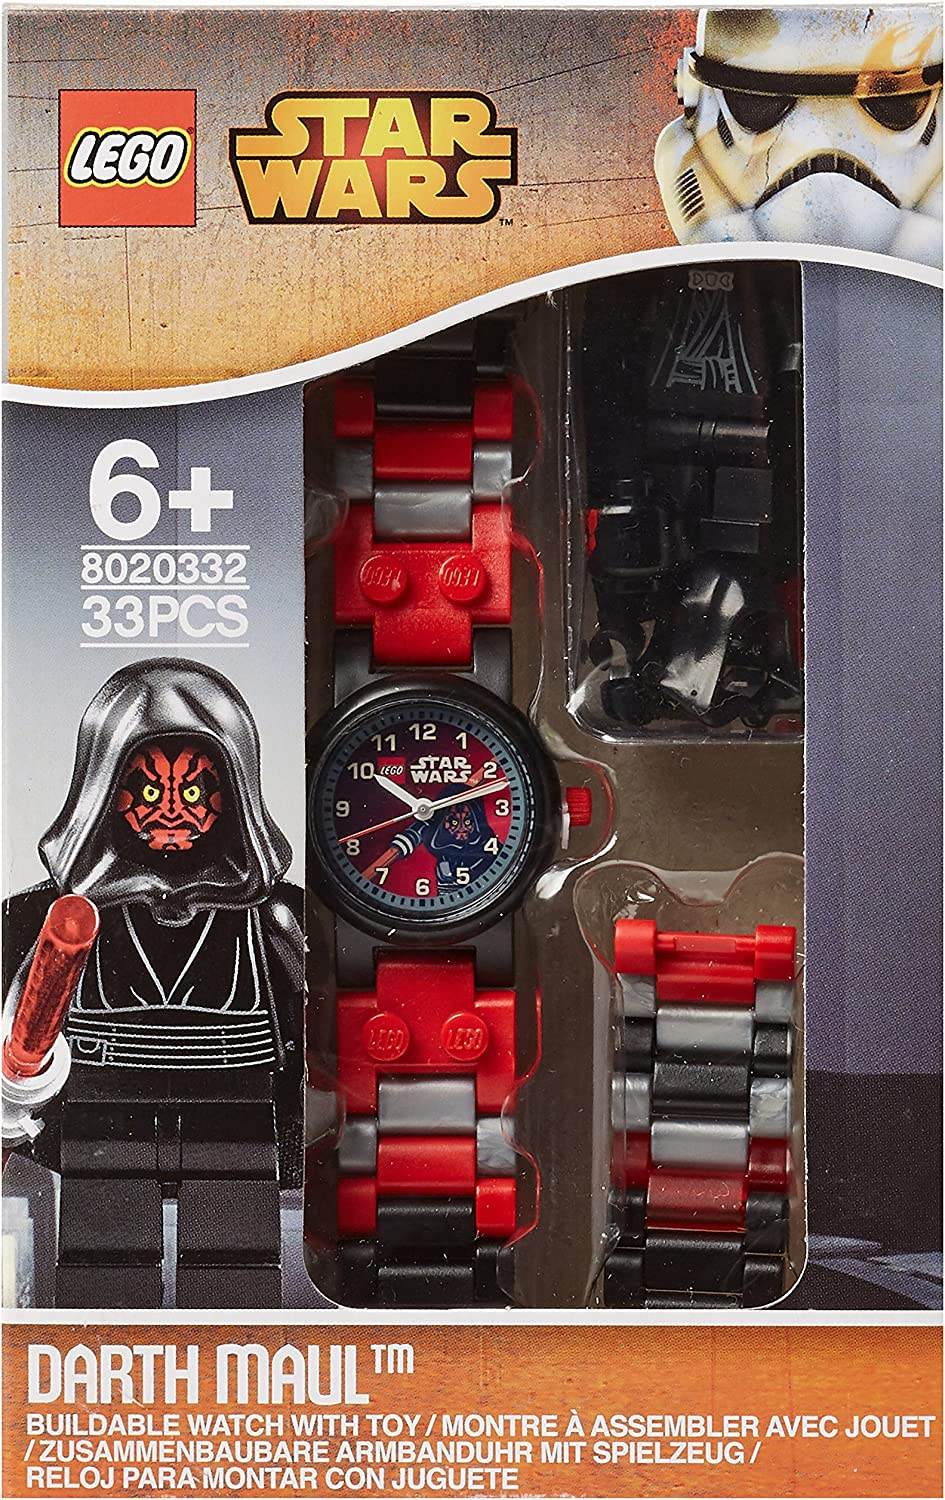 Lego Star Wars Darth Maul Hood Minifigure Children S Quartz Watch With Black Dial Analogue Display And Multicolour Plastic Link Strap 9004315 Amazon Co Uk Watches